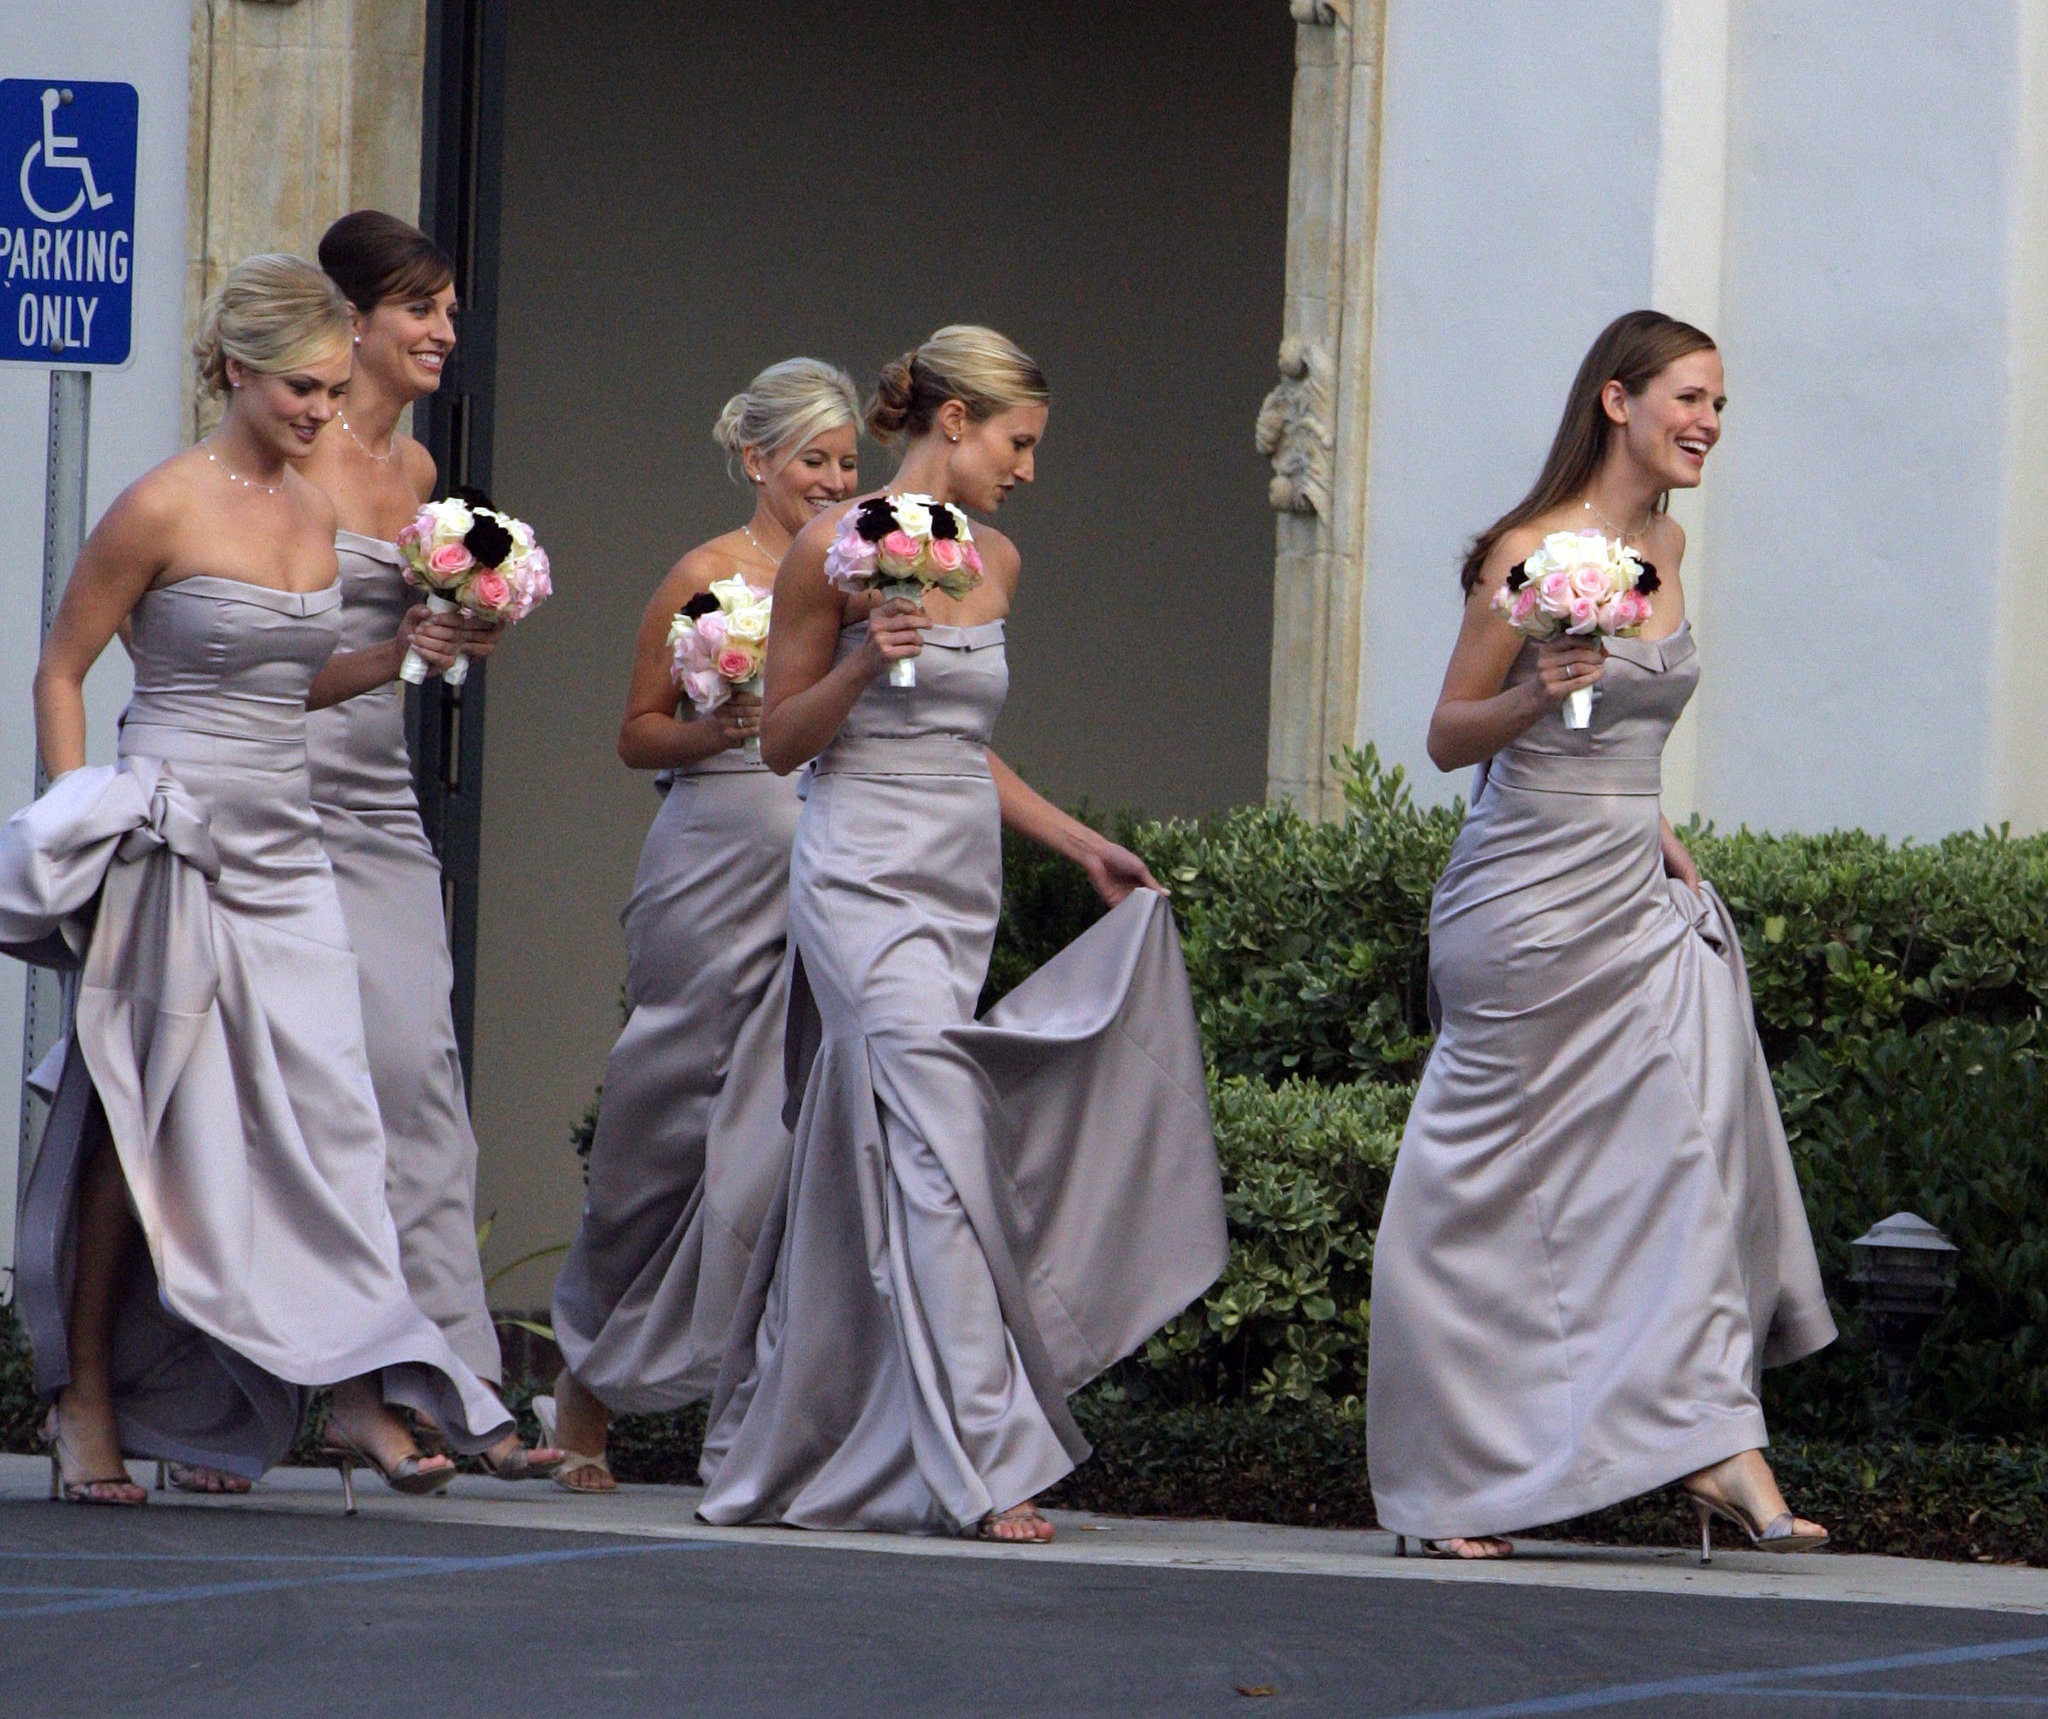 Jennifer Garner led the way for the bridal party during an October 2006 event in Montecito.